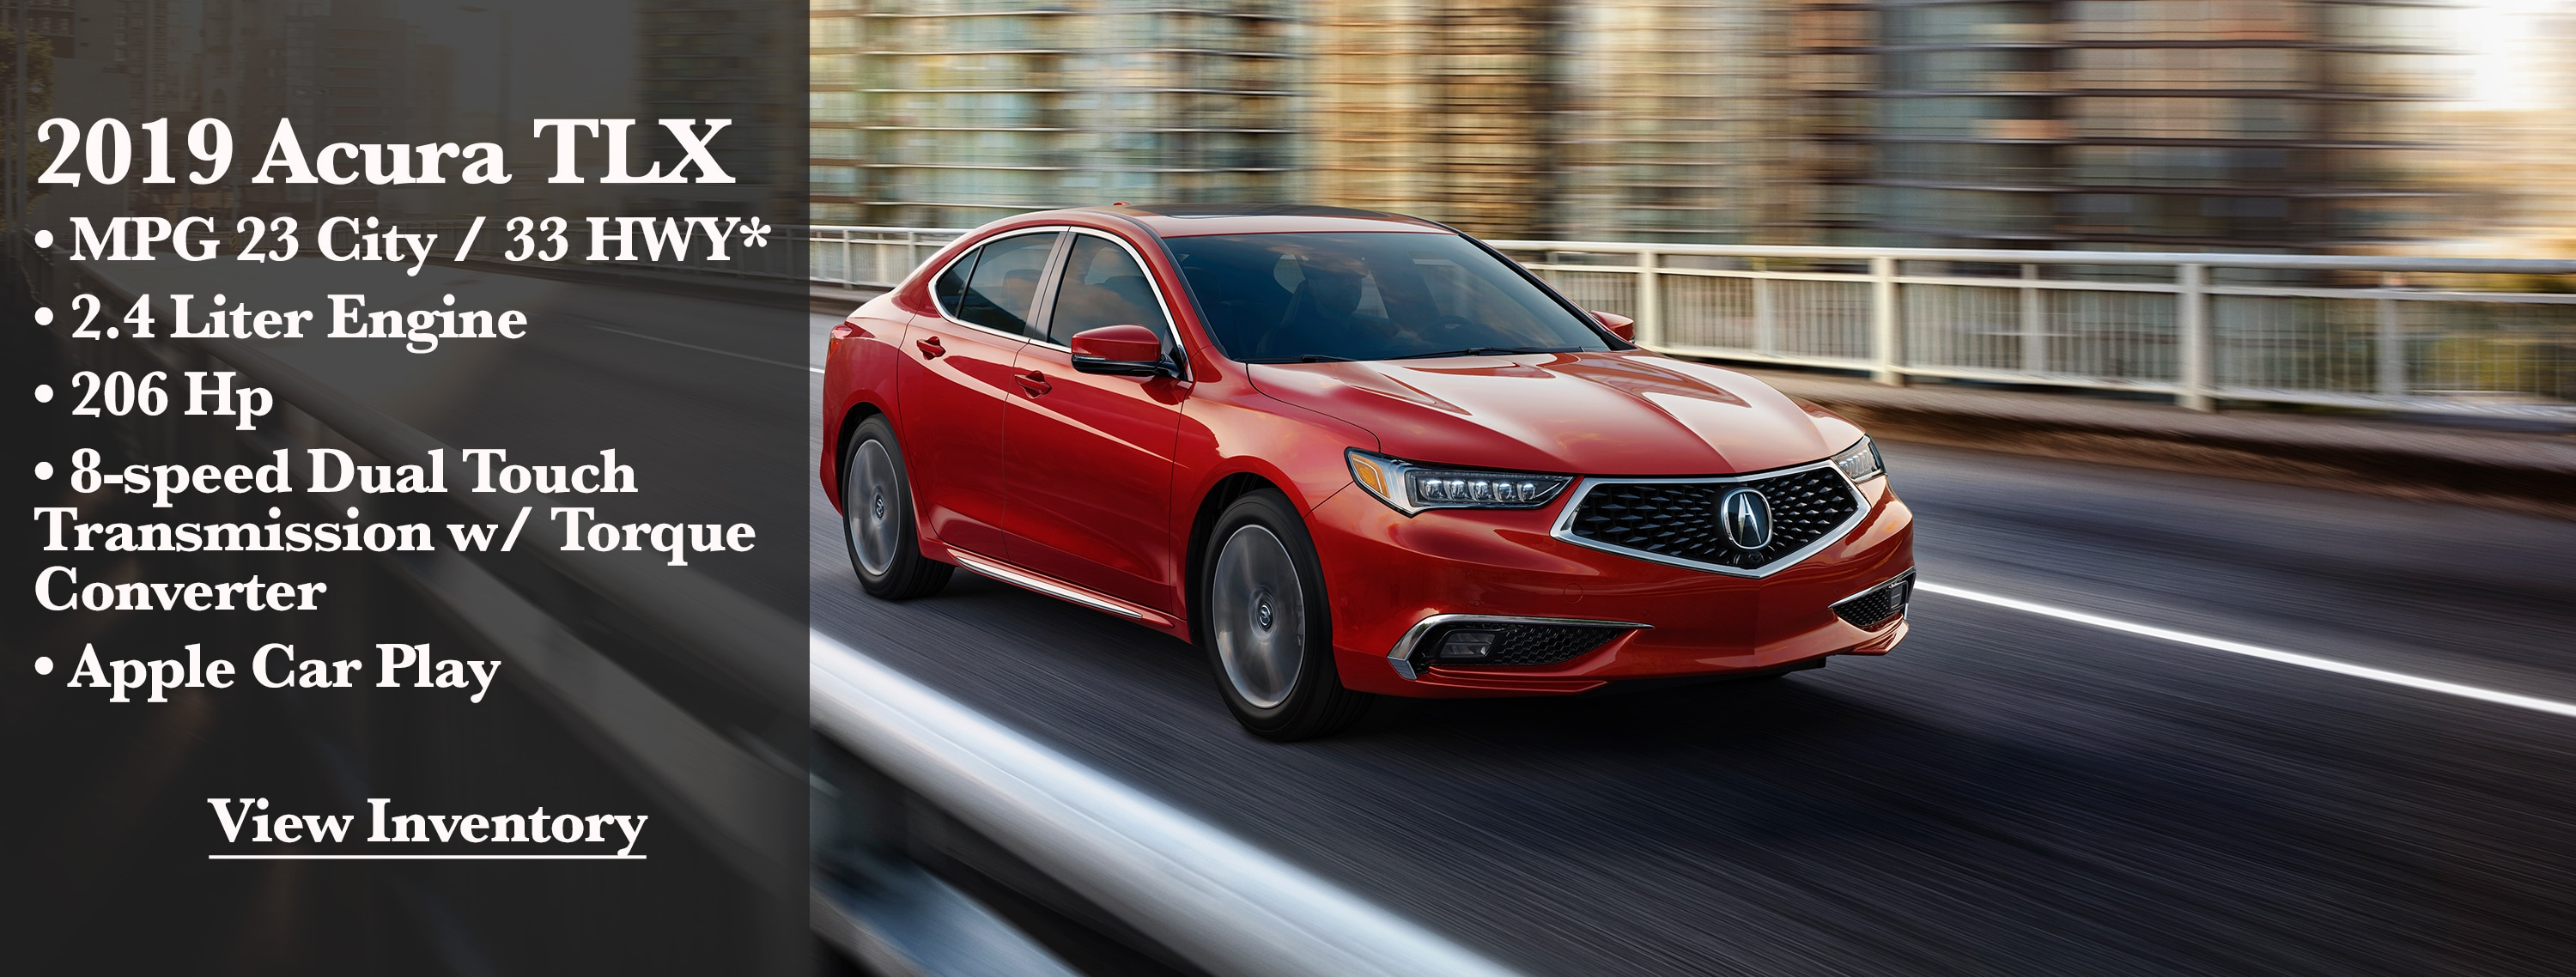 2019 Acura Tlx Review Stockton Acura New Used Acuras